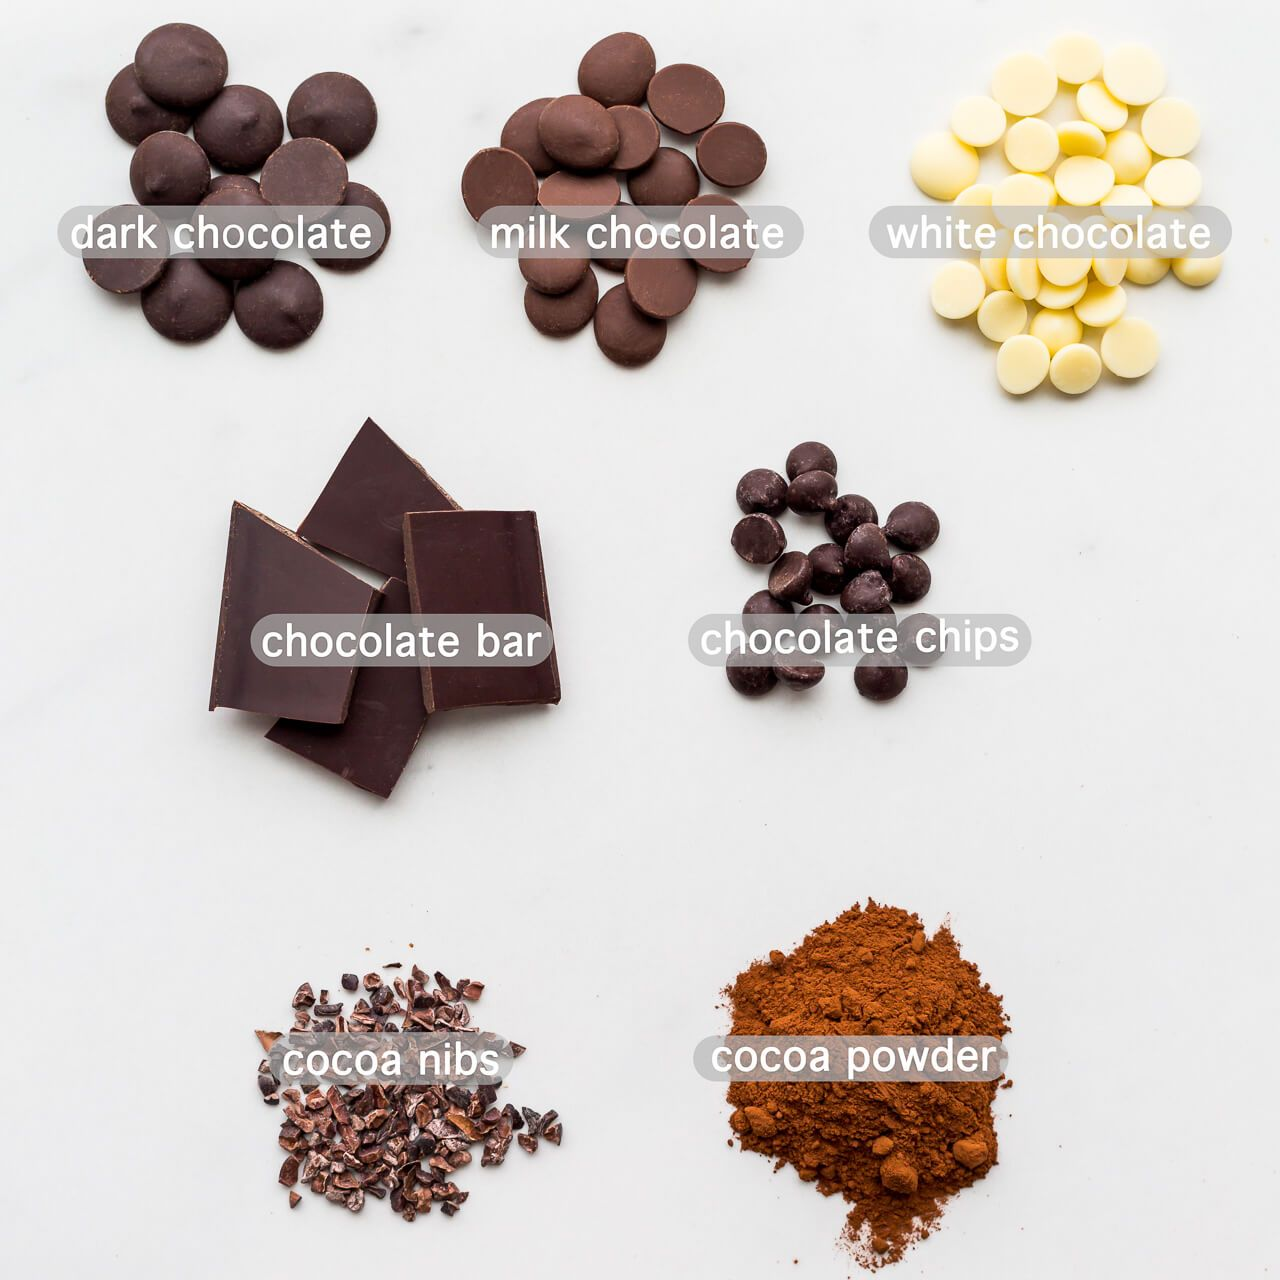 Types Of Chocolate Understanding Cacao Content Percentage Lindt Everyday Excellence Types Of Chocolate Lindt Dark Chocolate Chocolate Baking